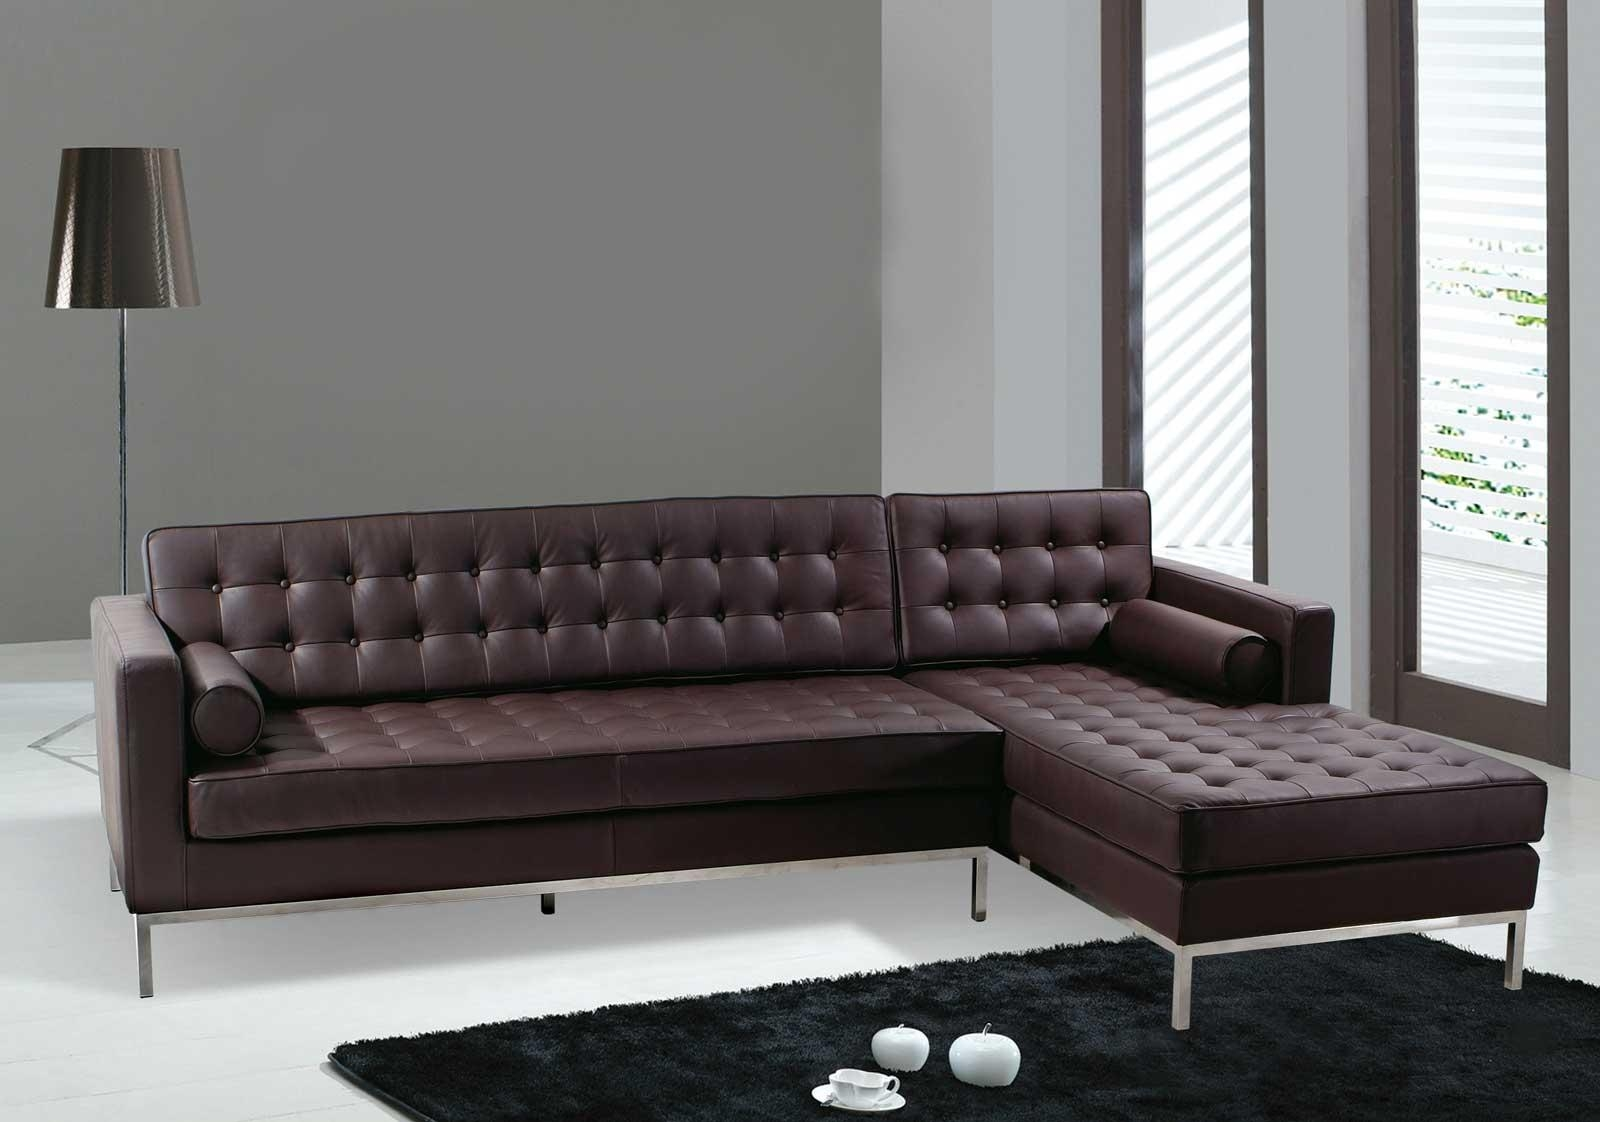 Modern Leather Sectional Sofas Leather — Liberty Interior Pertaining To Italian Leather Sectionals Contemporary (View 5 of 20)